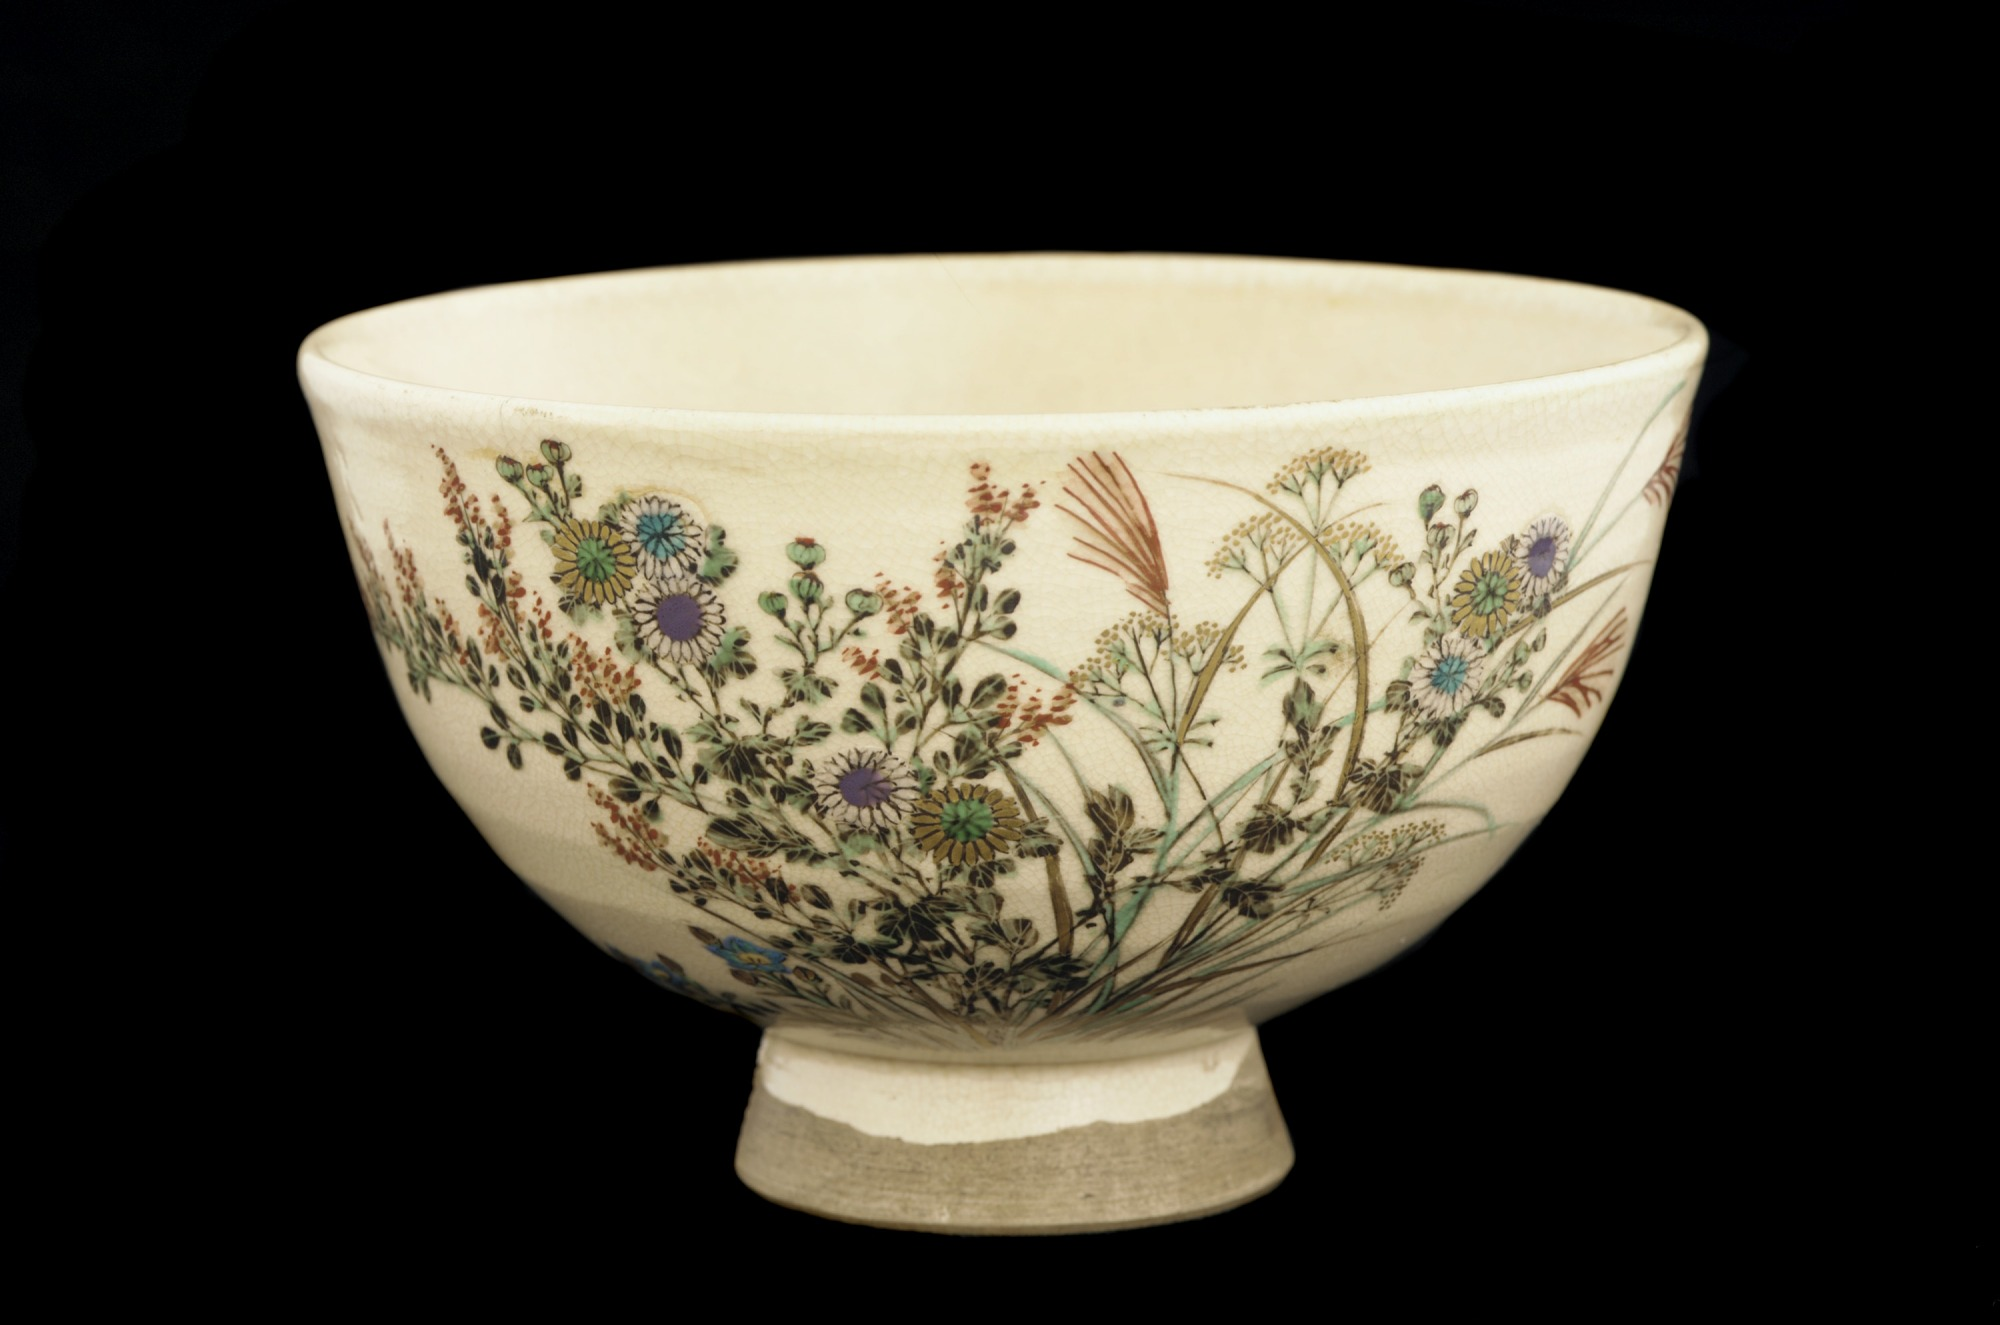 Tea bowl with design of autumn grasses